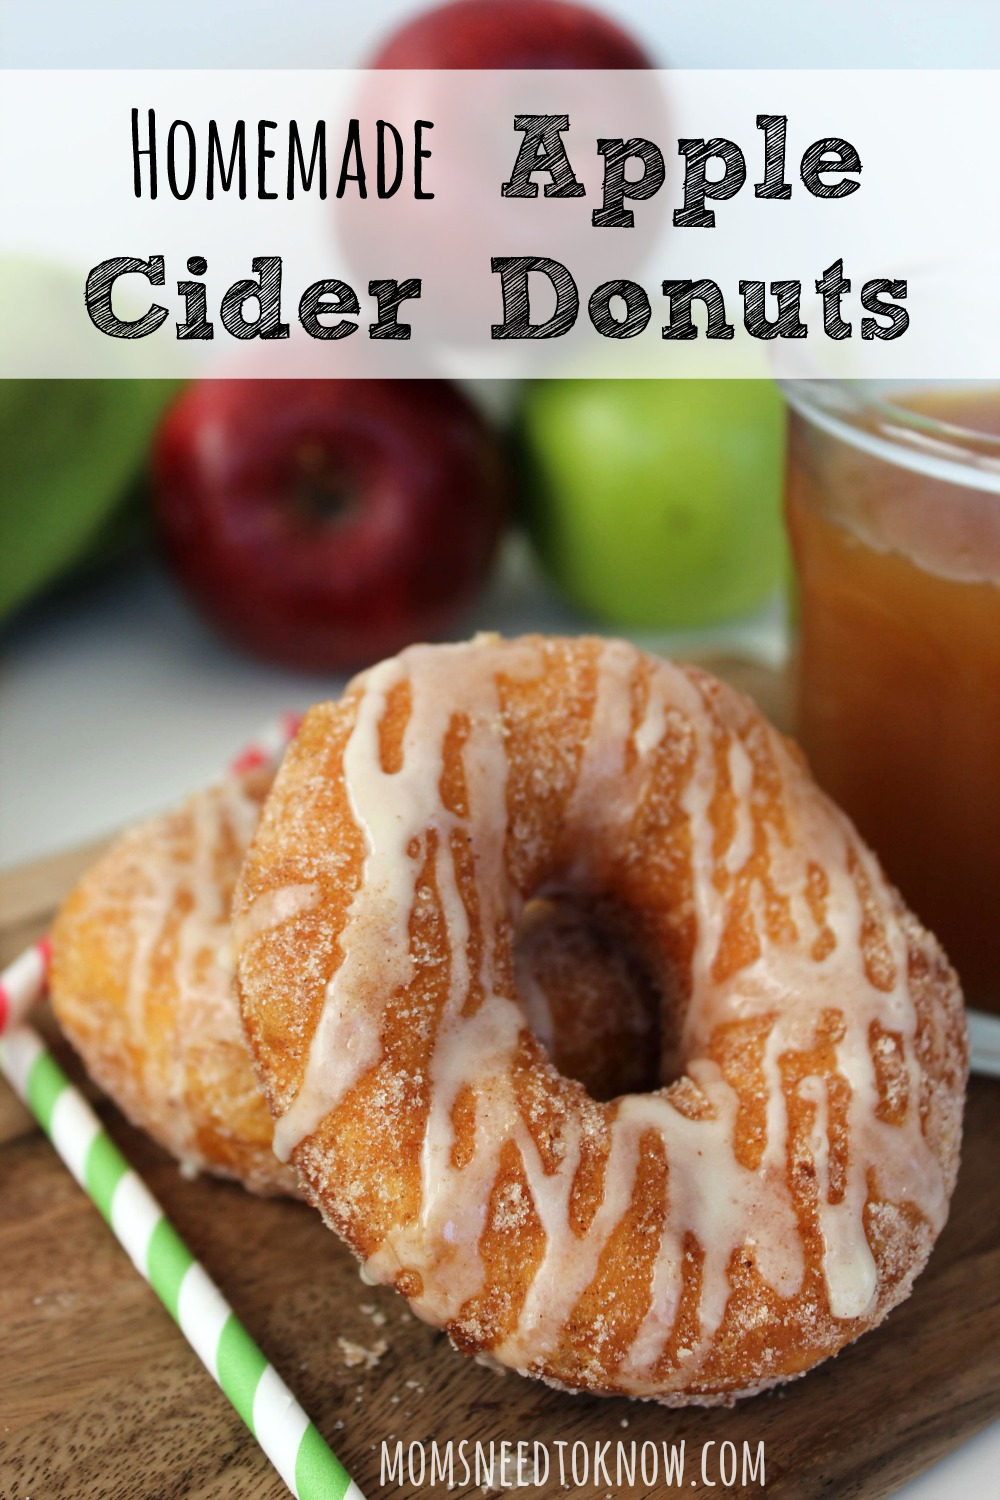 These homemade apple cider donuts are so easy to make and absolutely delicious. Serve them while still warm for the best results!